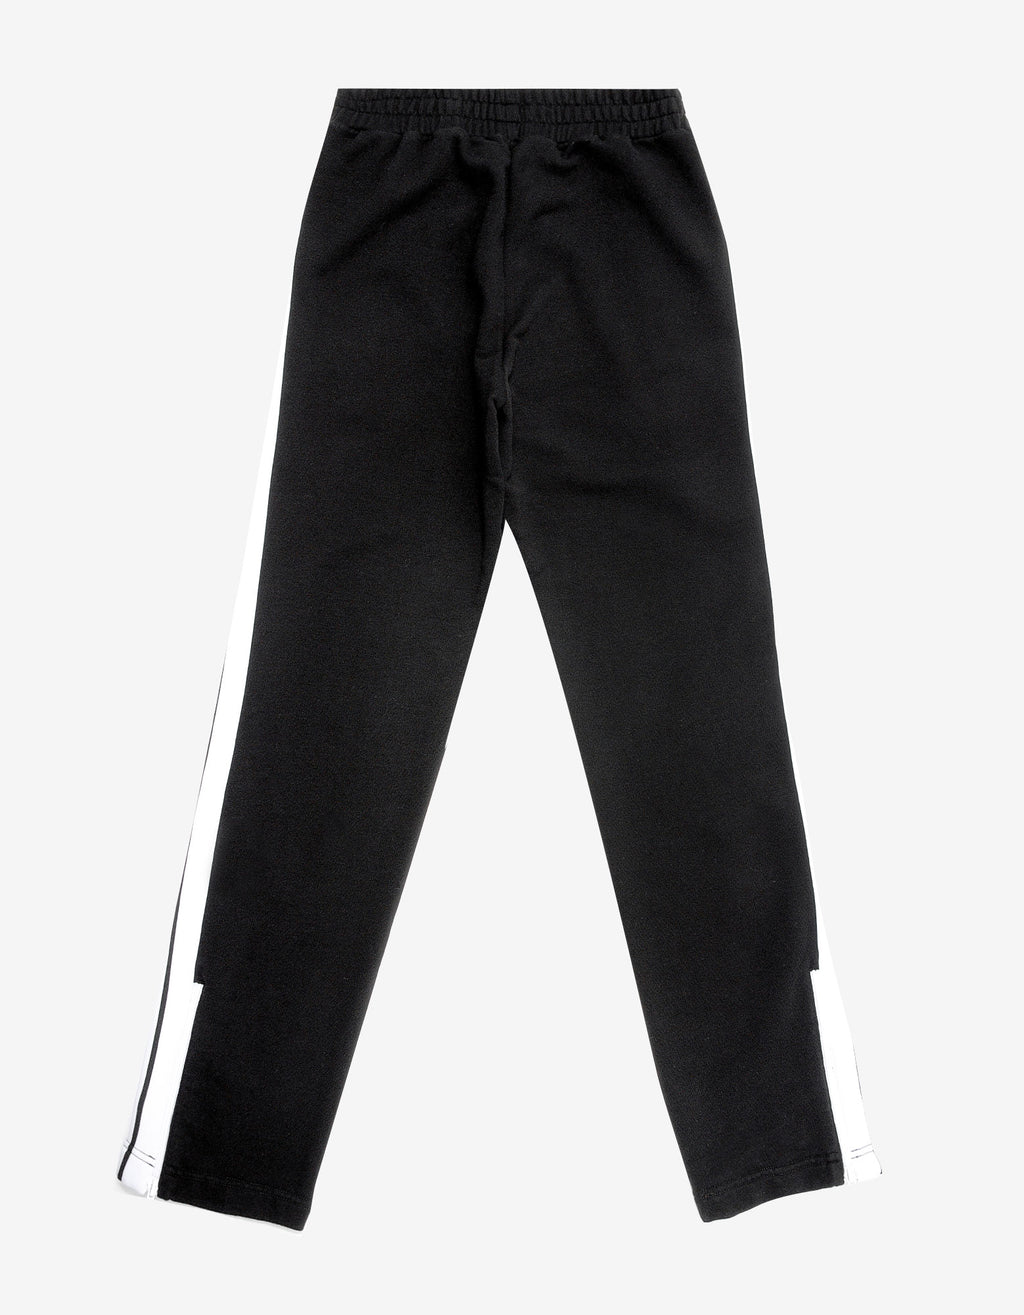 Black Fleece Track Pants